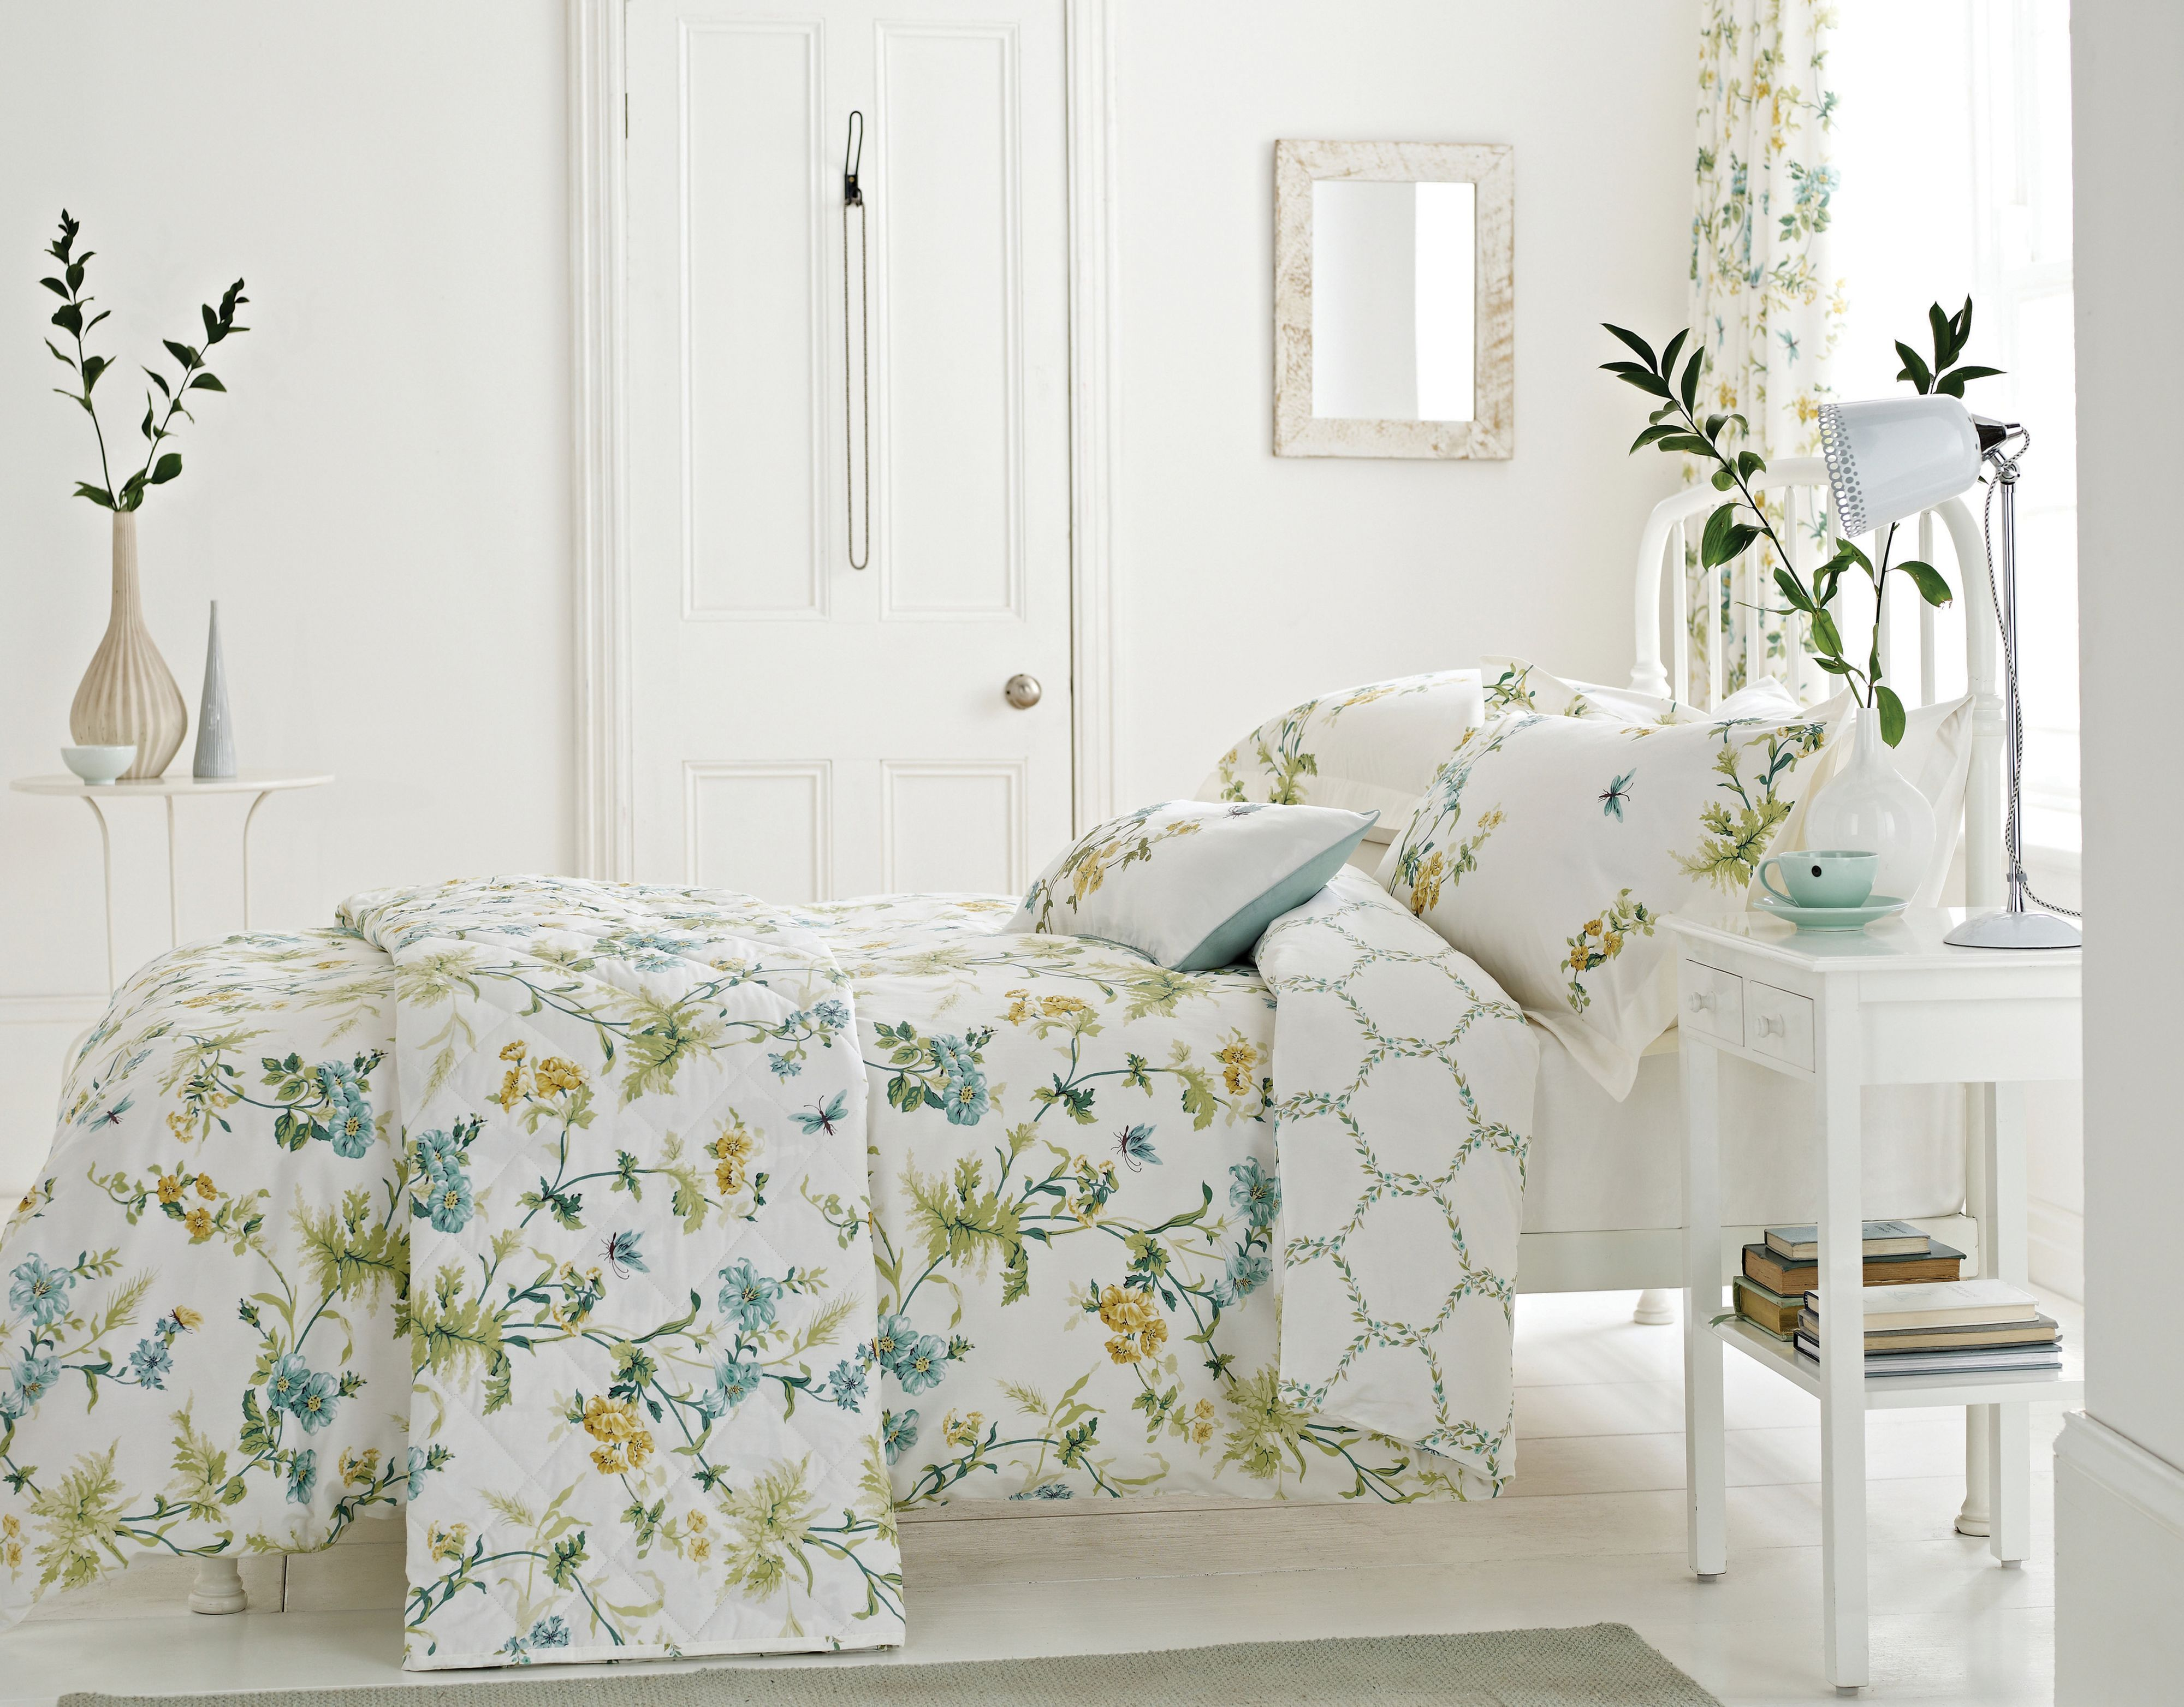 Primrose Hill bedding in Duck Egg